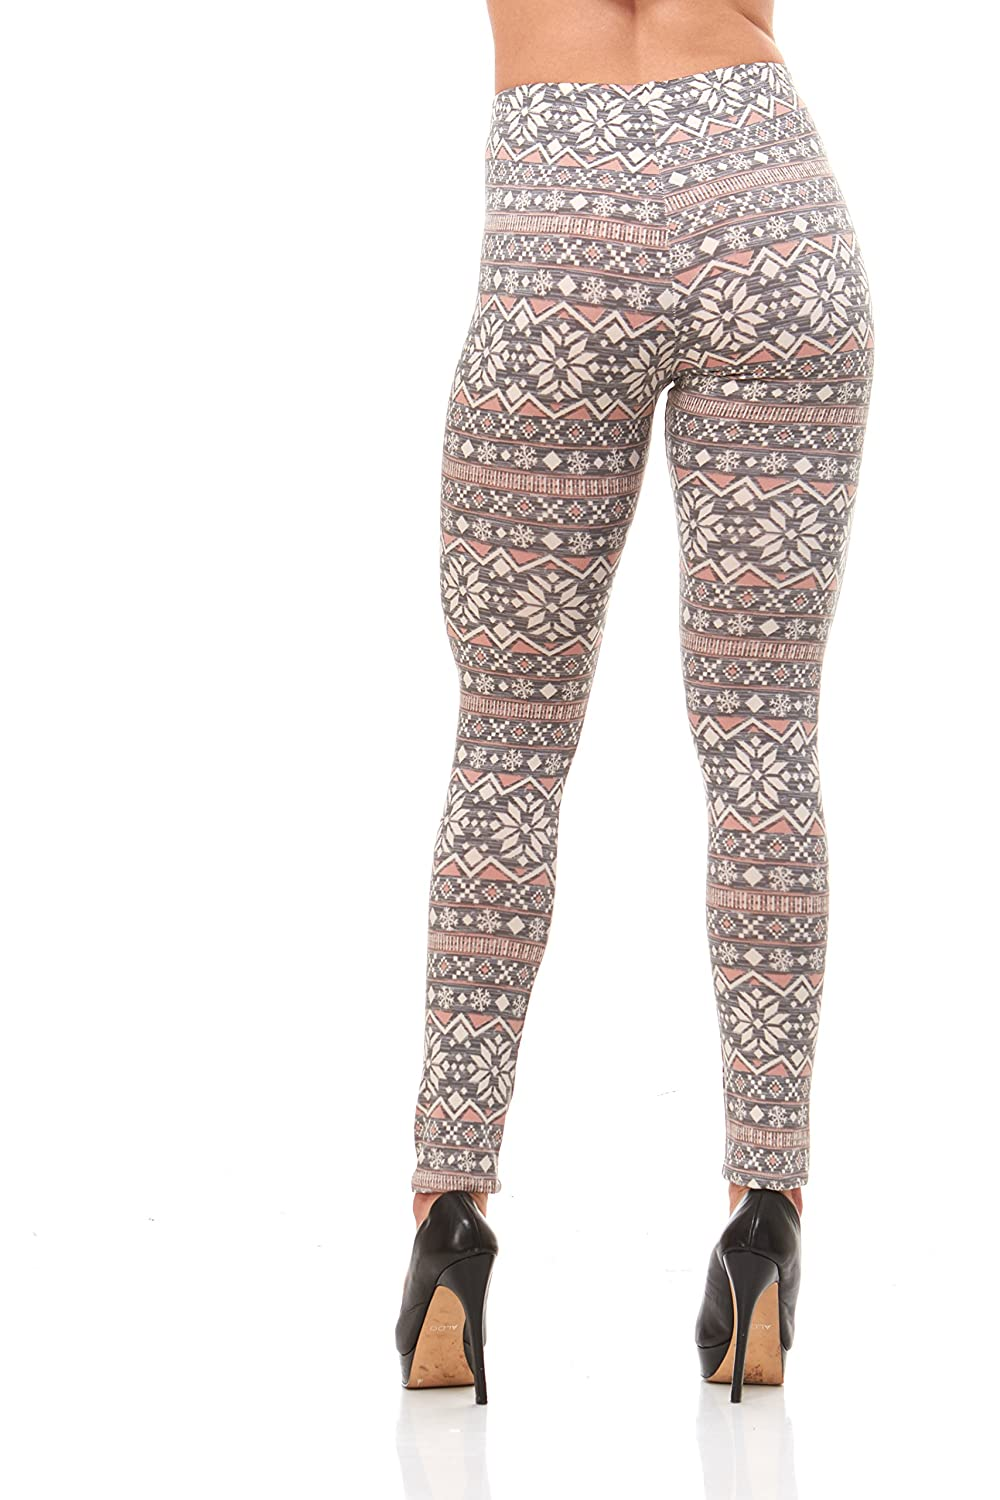 55a13014683fe4 Premium Women's Designed Leggings Winter Warm (Regular and Plus Size) at  Amazon Women's Clothing store: